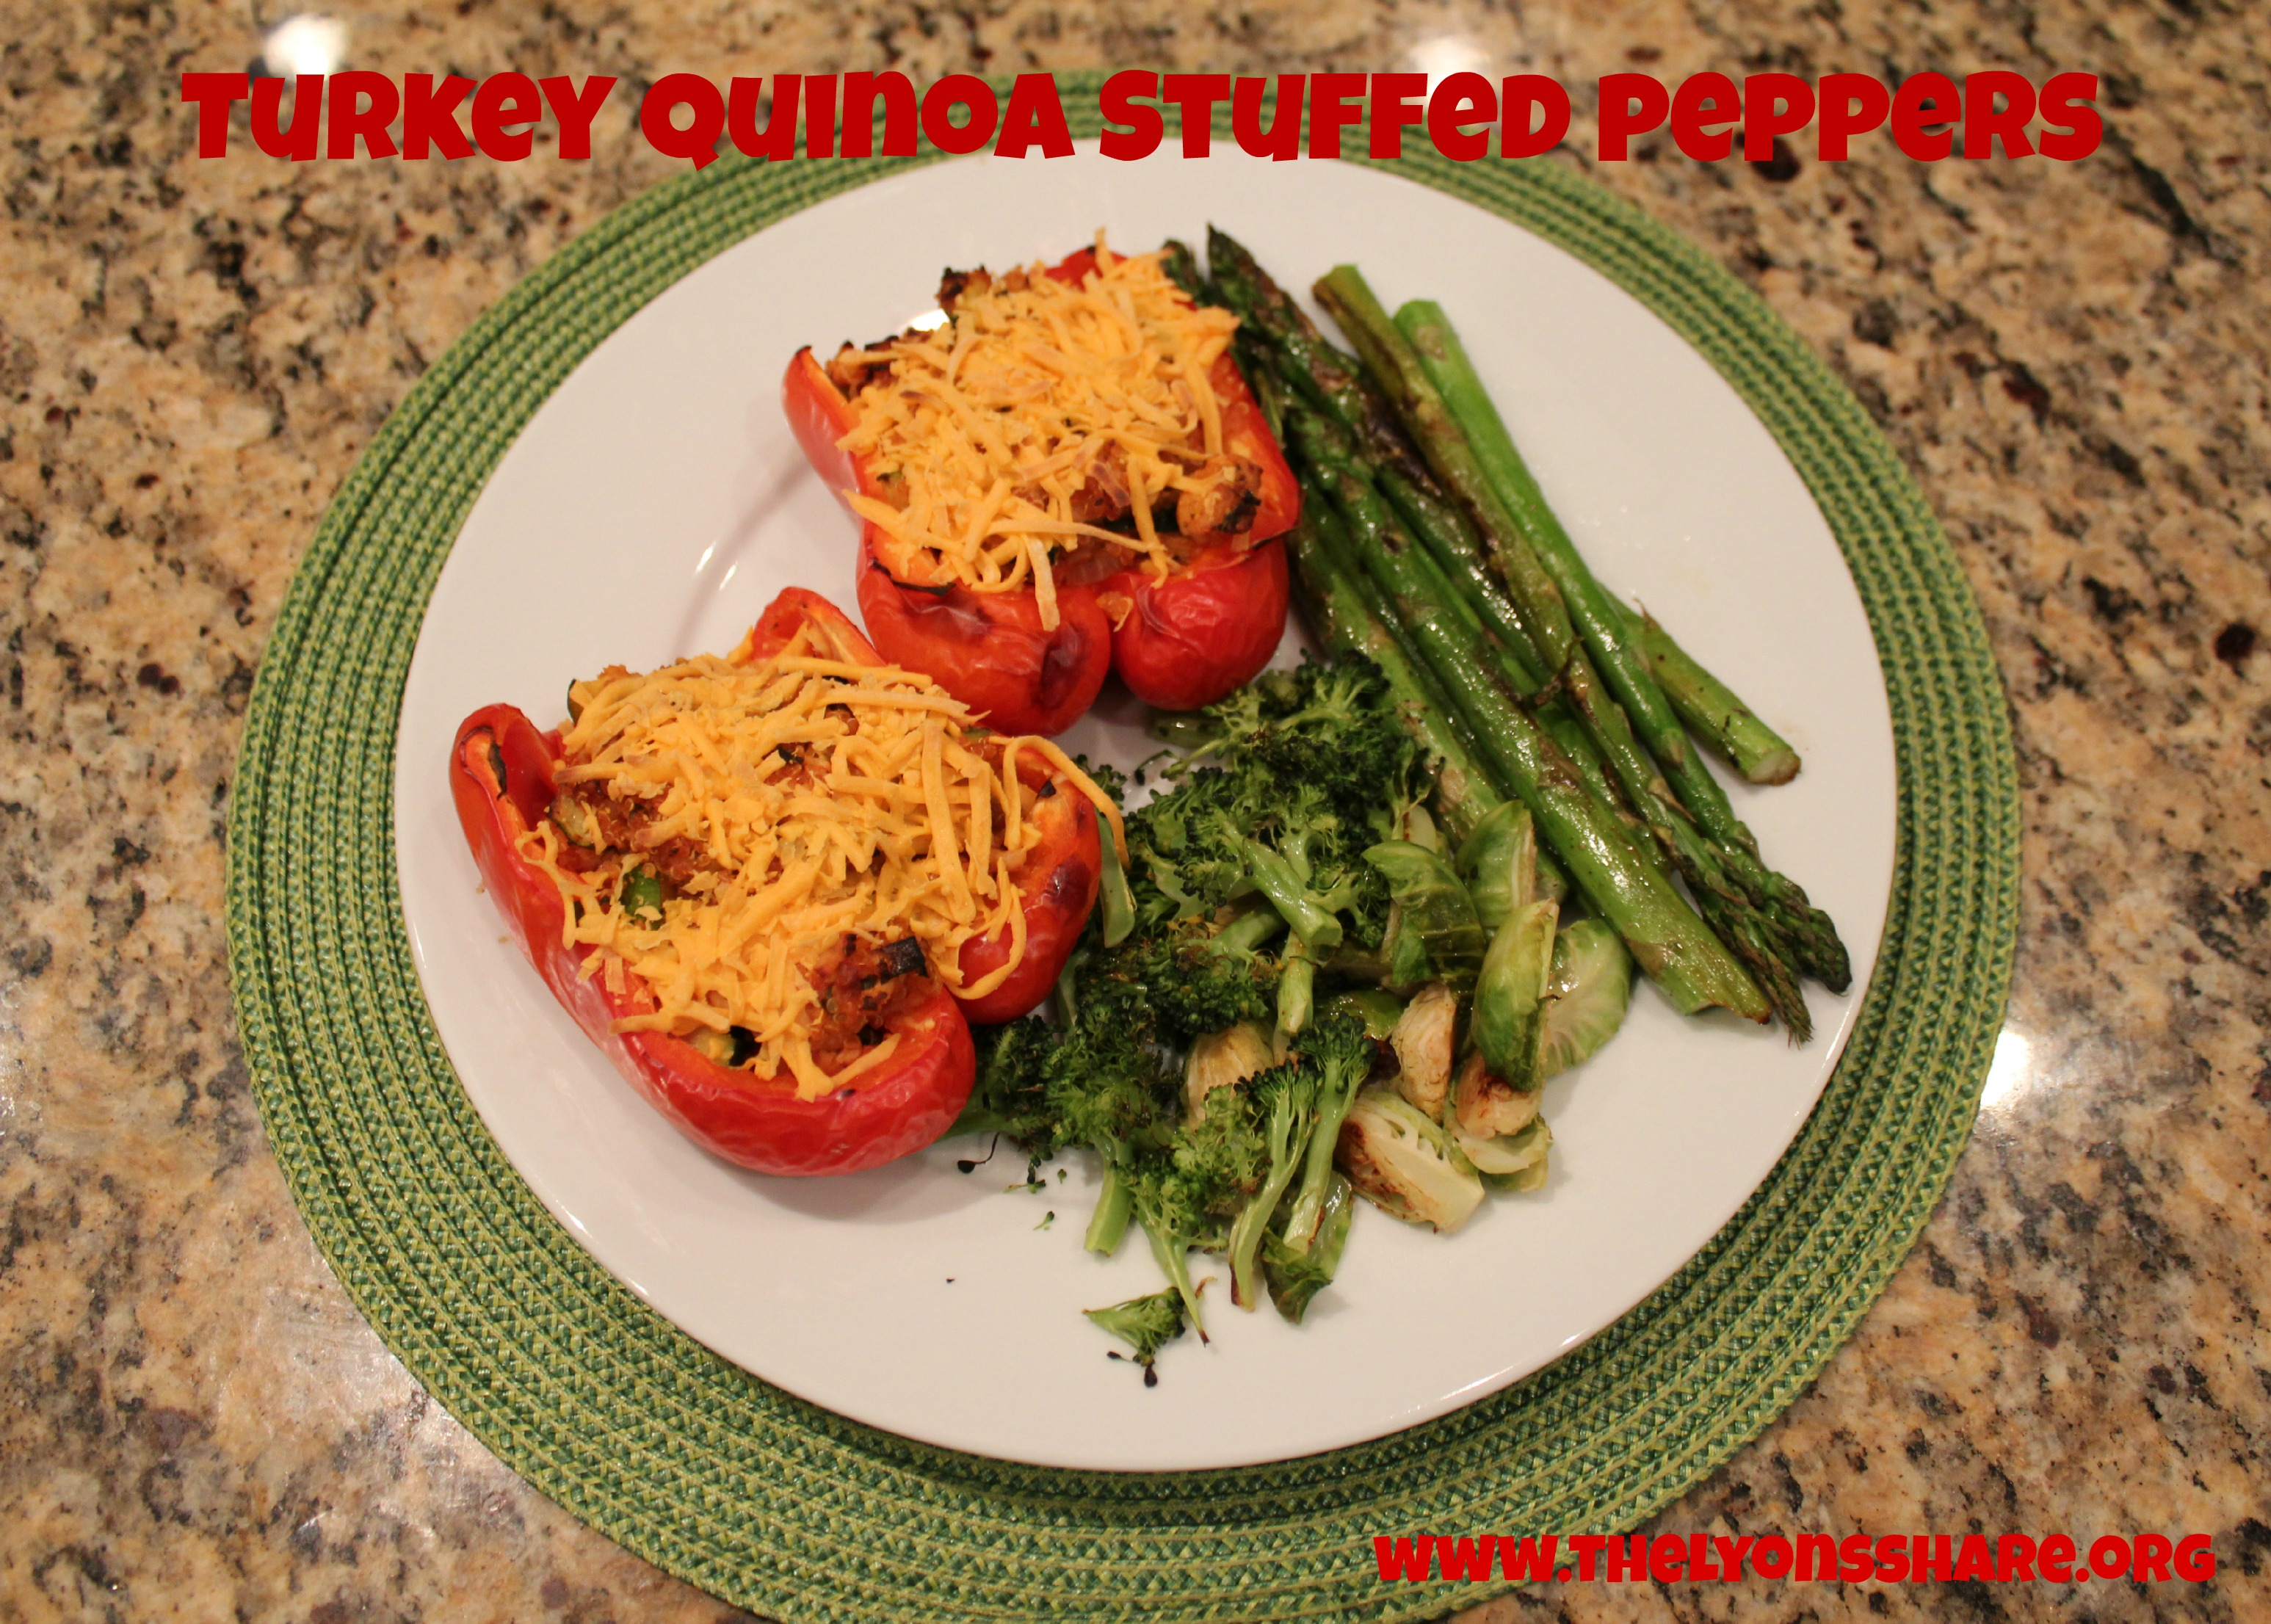 Turkey Quinoa Stuffed Peppers Recipe